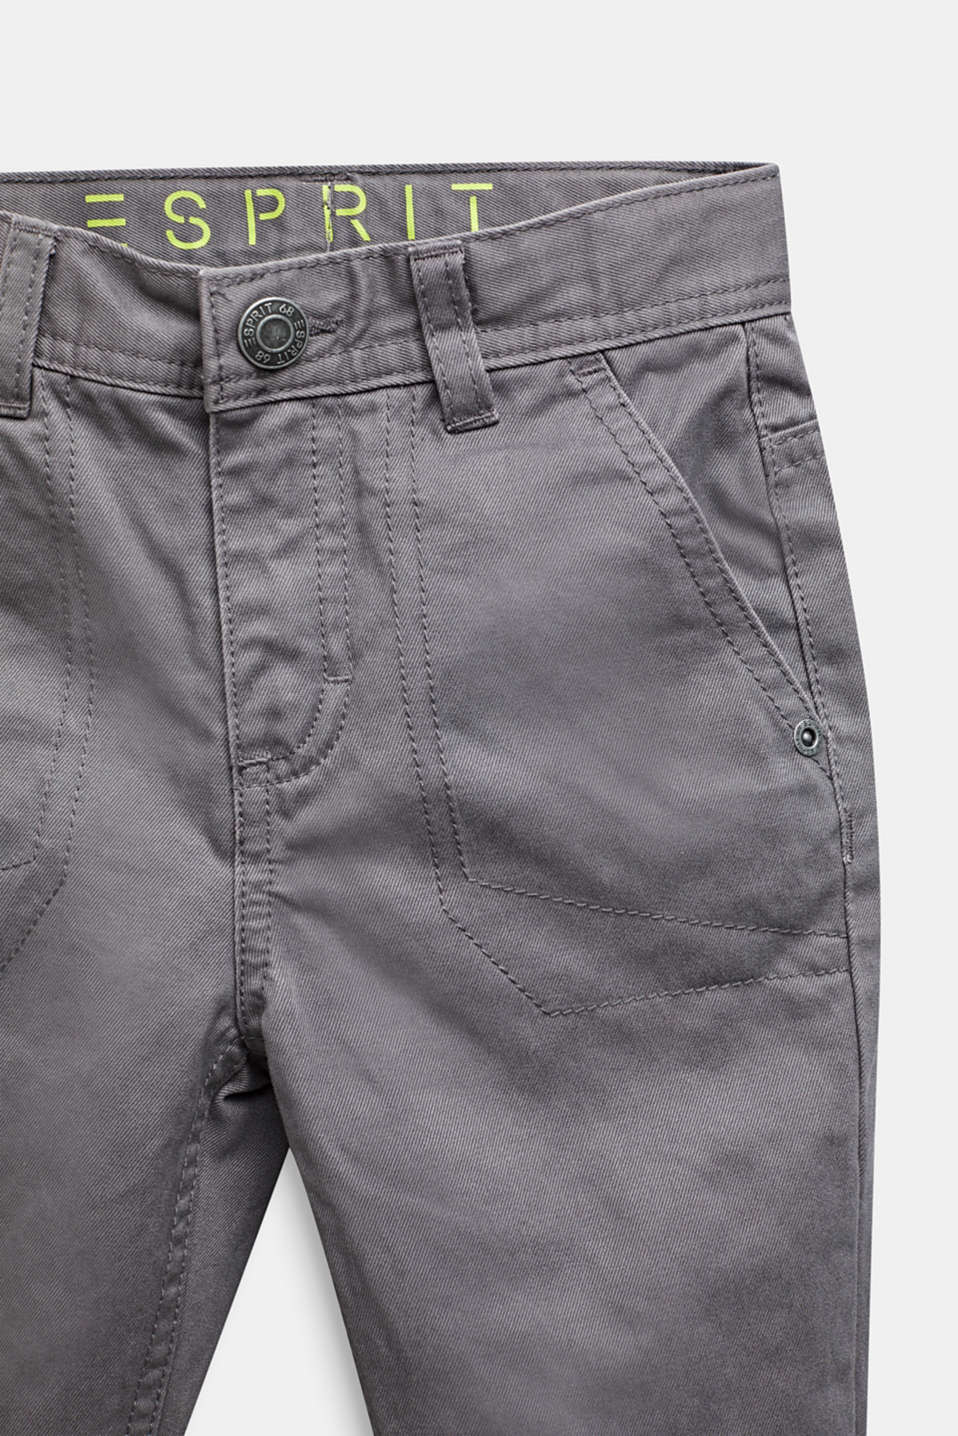 Twill trousers with jersey lining, GREY STONE, detail image number 1